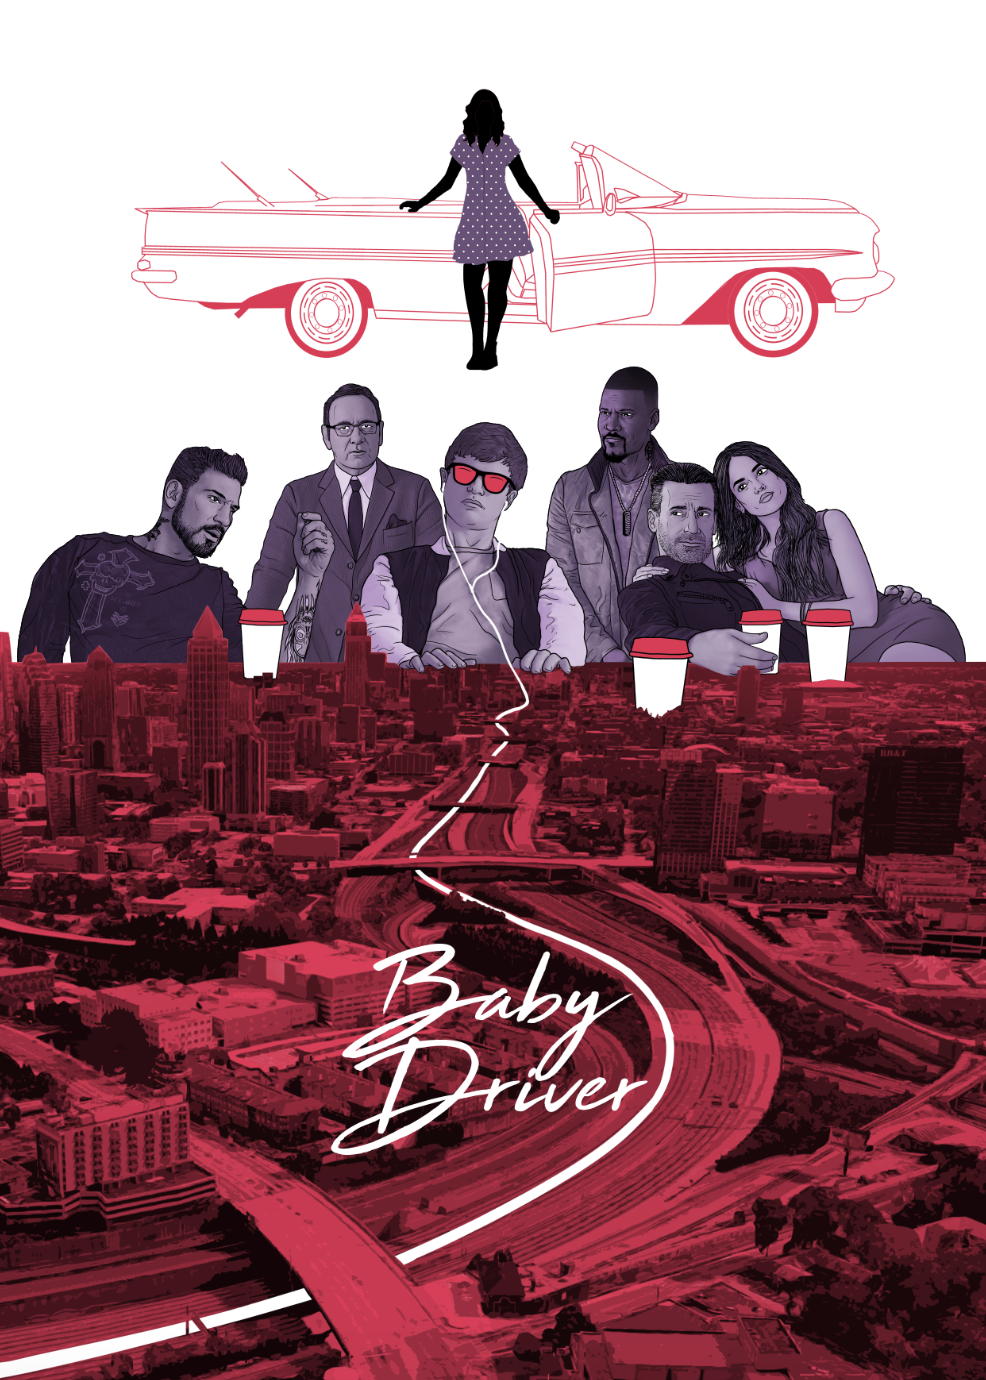 Baby Driver - Poster Design